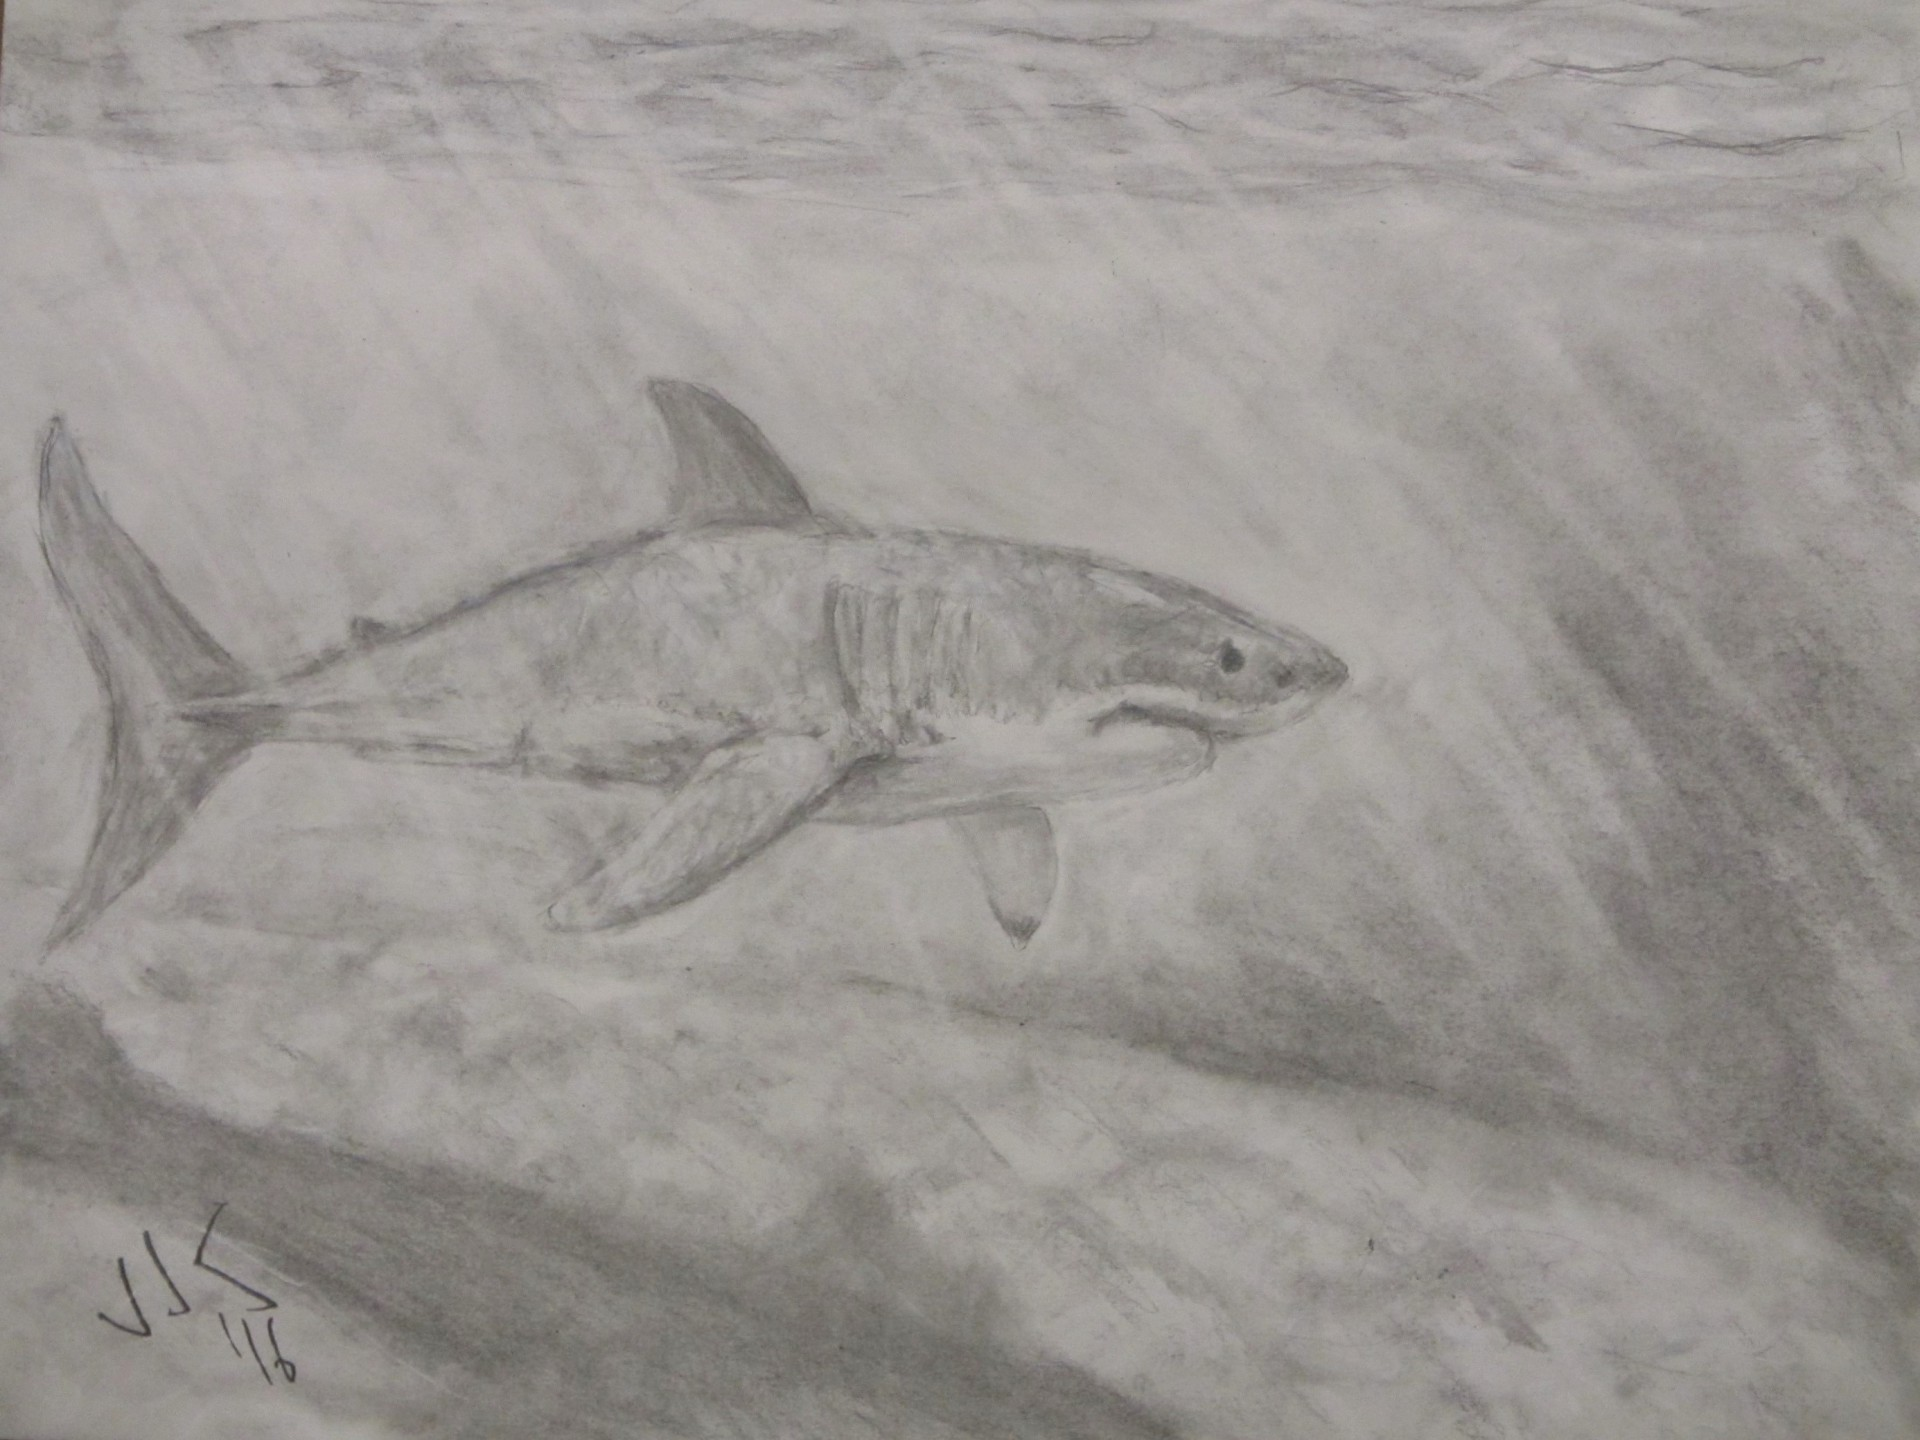 Pencil drawing of a great white shark under water.